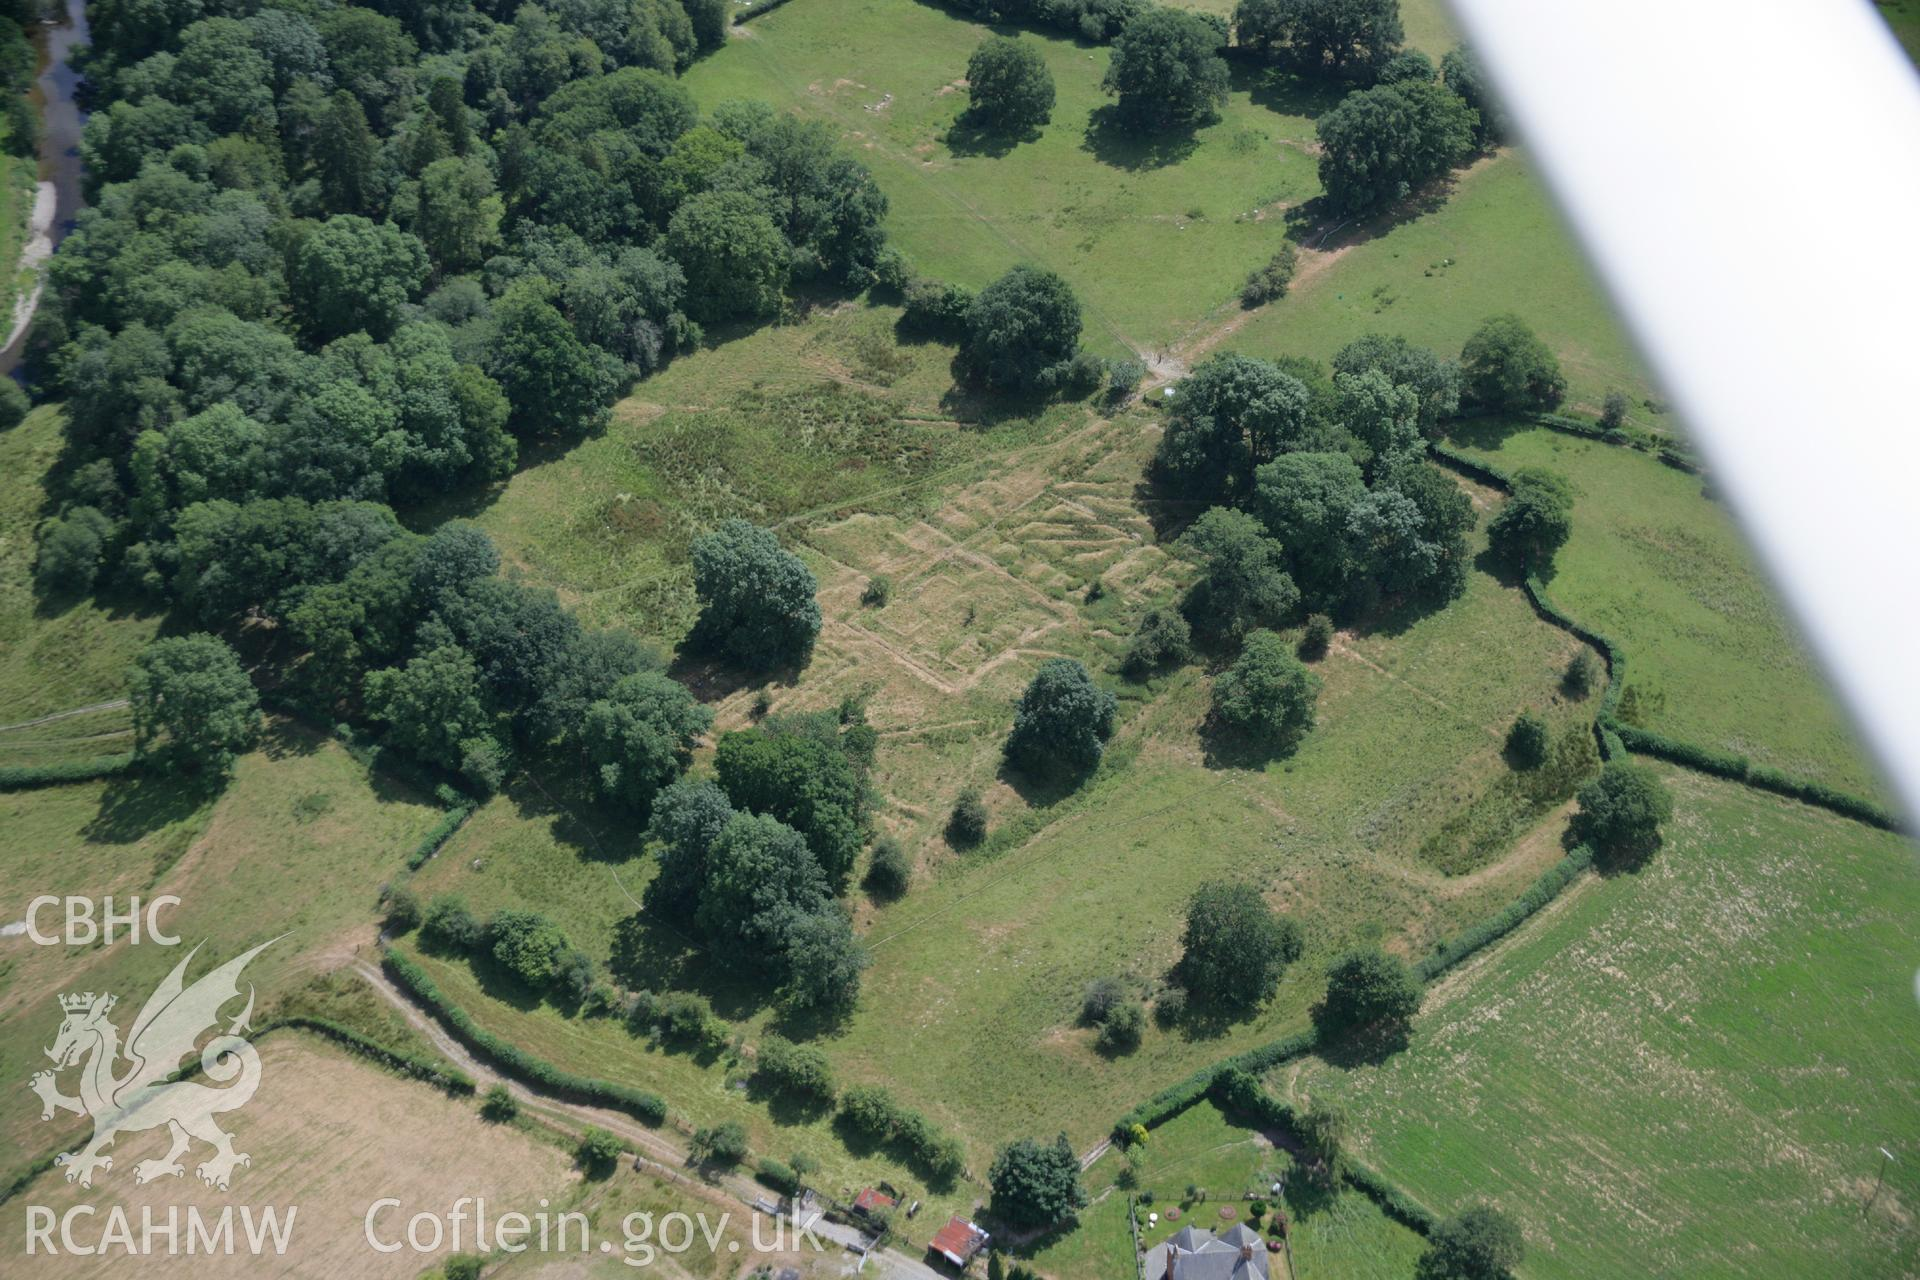 RCAHMW colour oblique aerial photograph of Castell Collen Roman Fort. Taken on 27 July 2006 by Toby Driver.